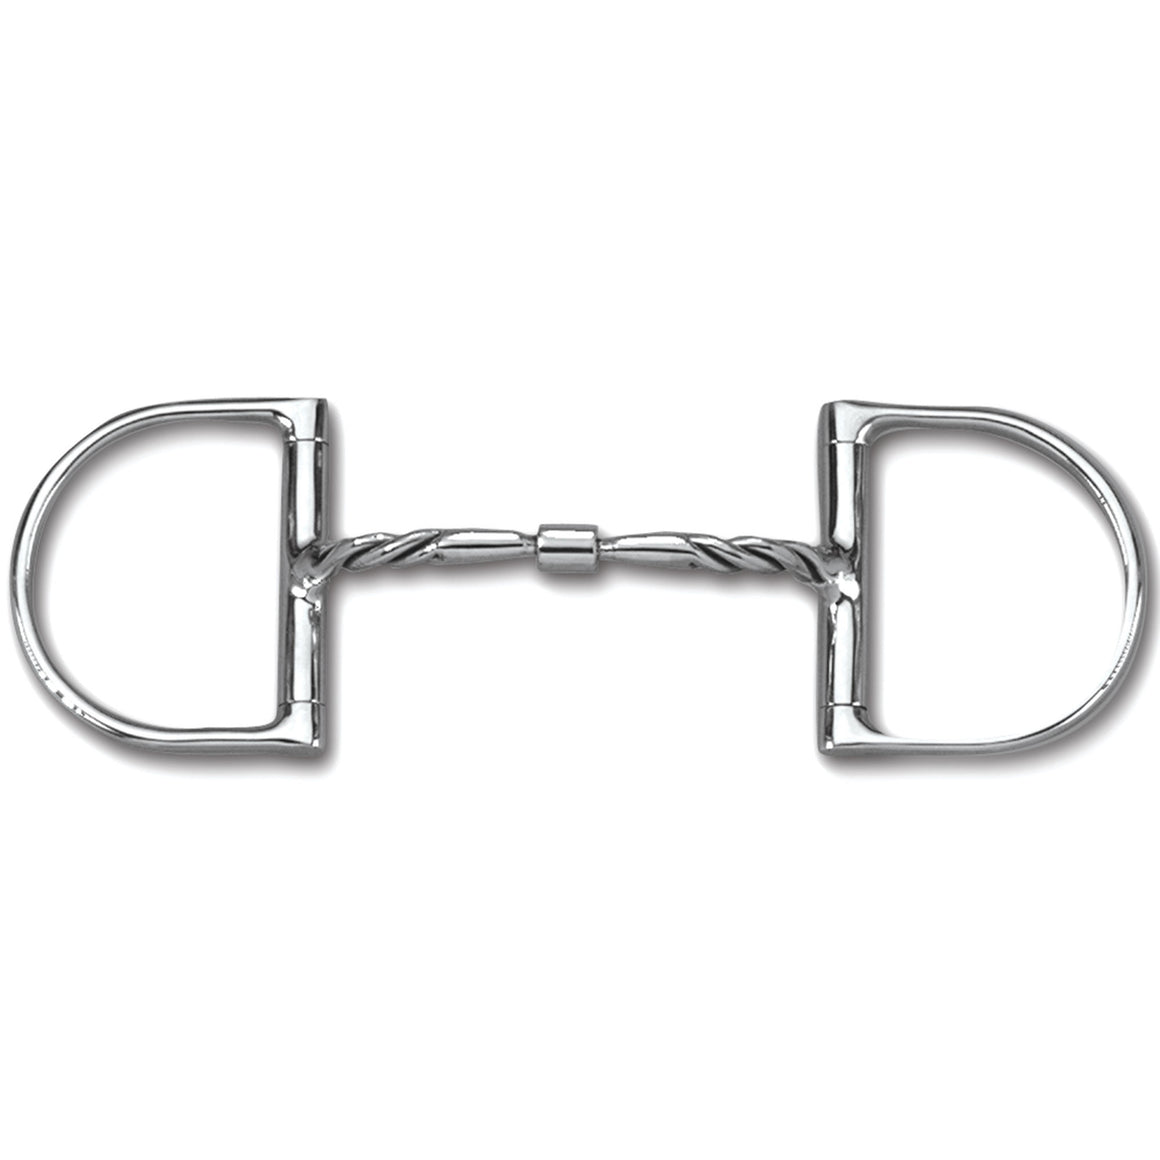 Myler Dee with Stainless Steel Twisted Comfort Snaffle MB 01T - The Bit Emporium